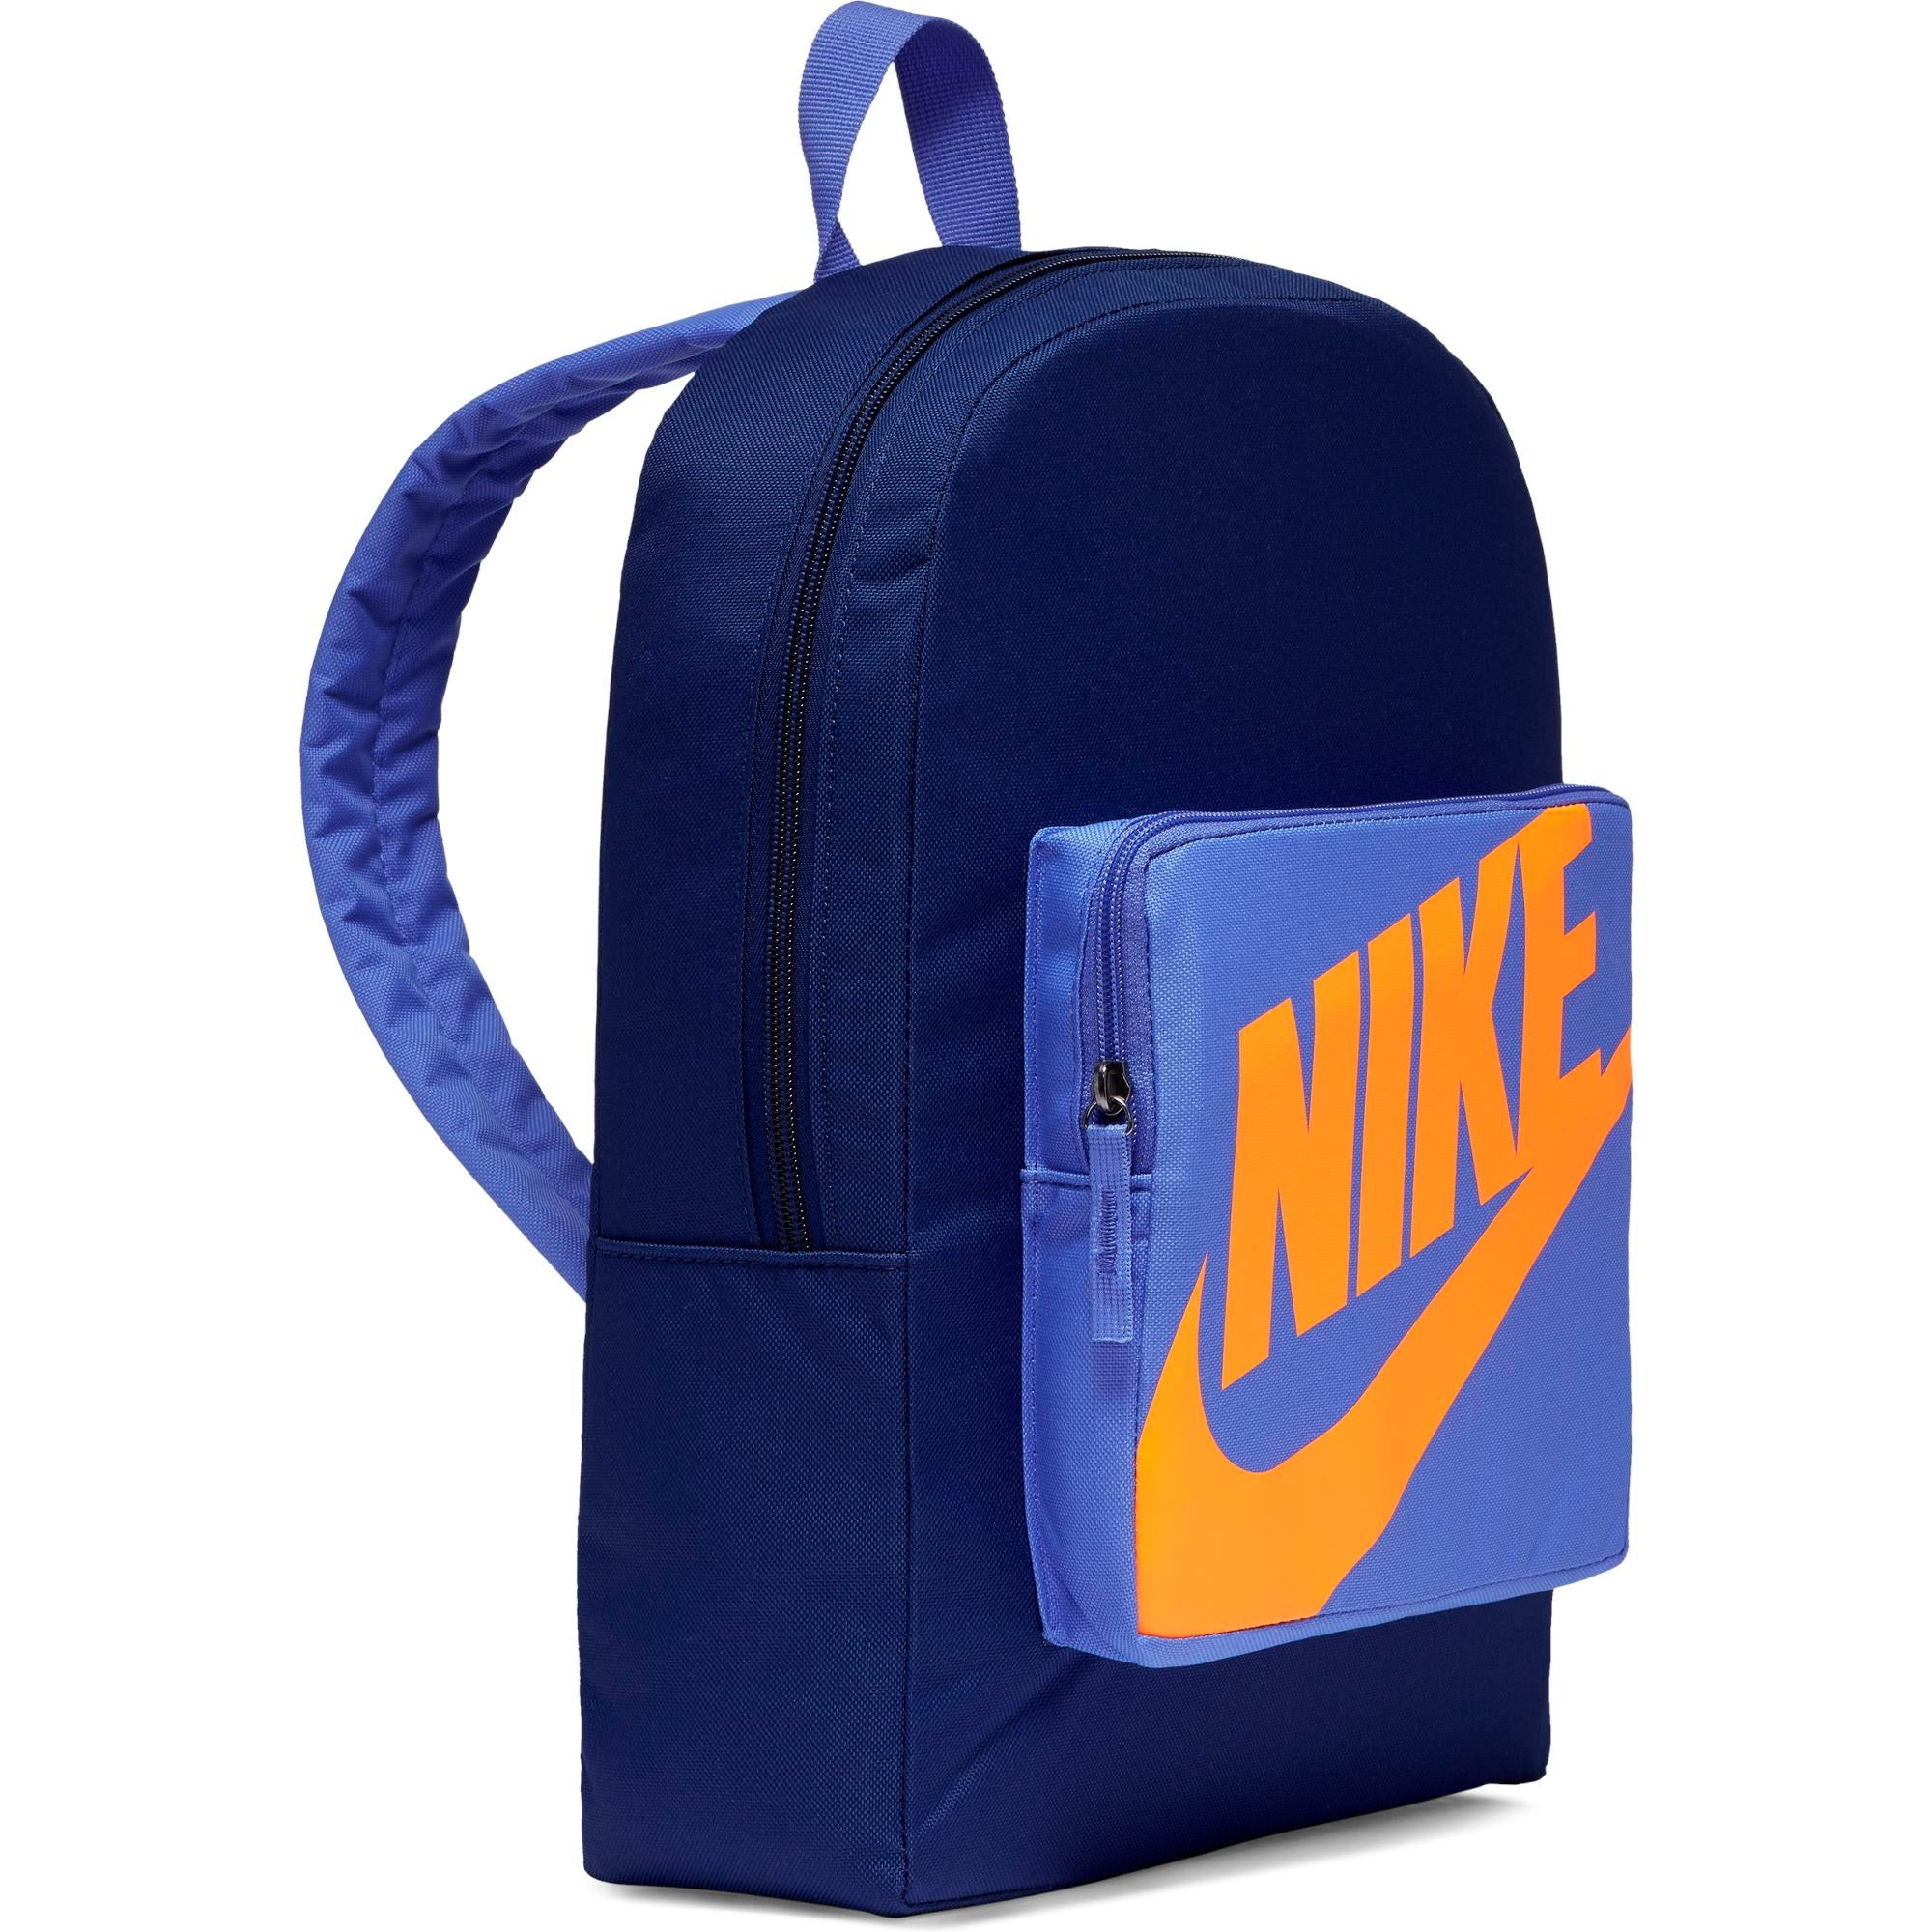 Nike Classic Backpack - Blue Void/Sapphire/Total Orange SP-Accessories-Bags Nike